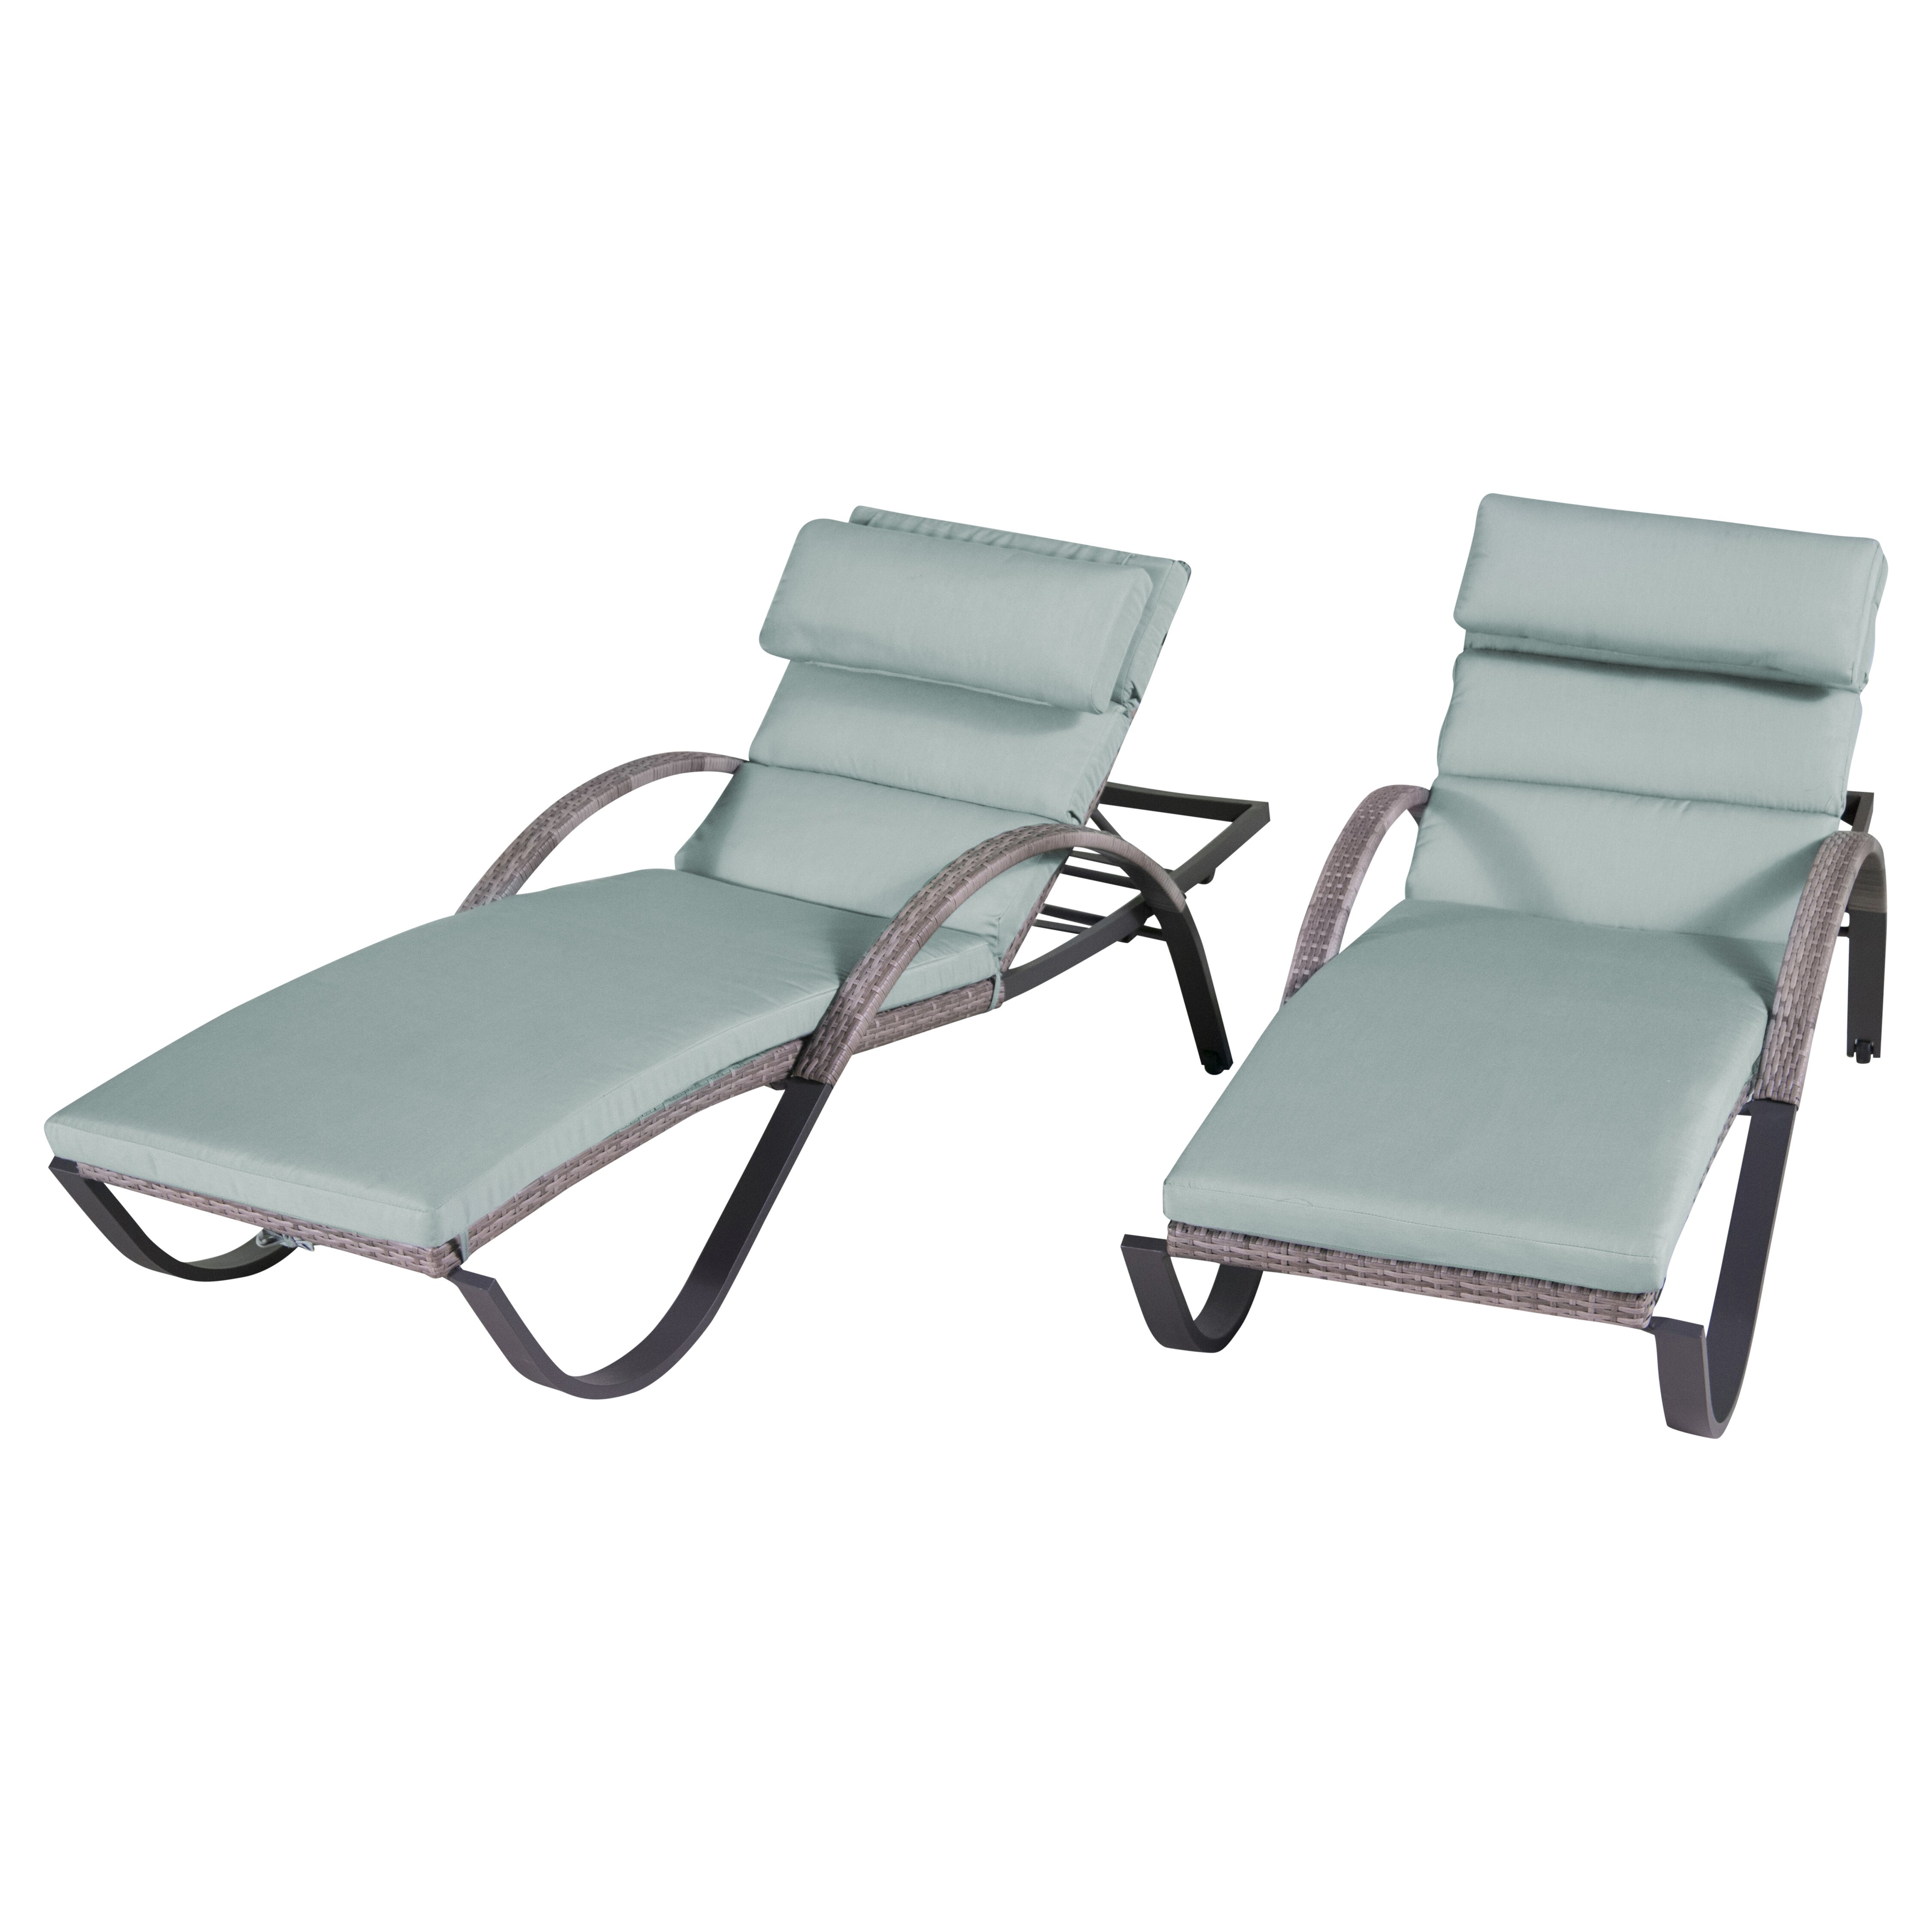 Wade logan alfonso chaise lounges with cushion reviews for 2 chaise lounges